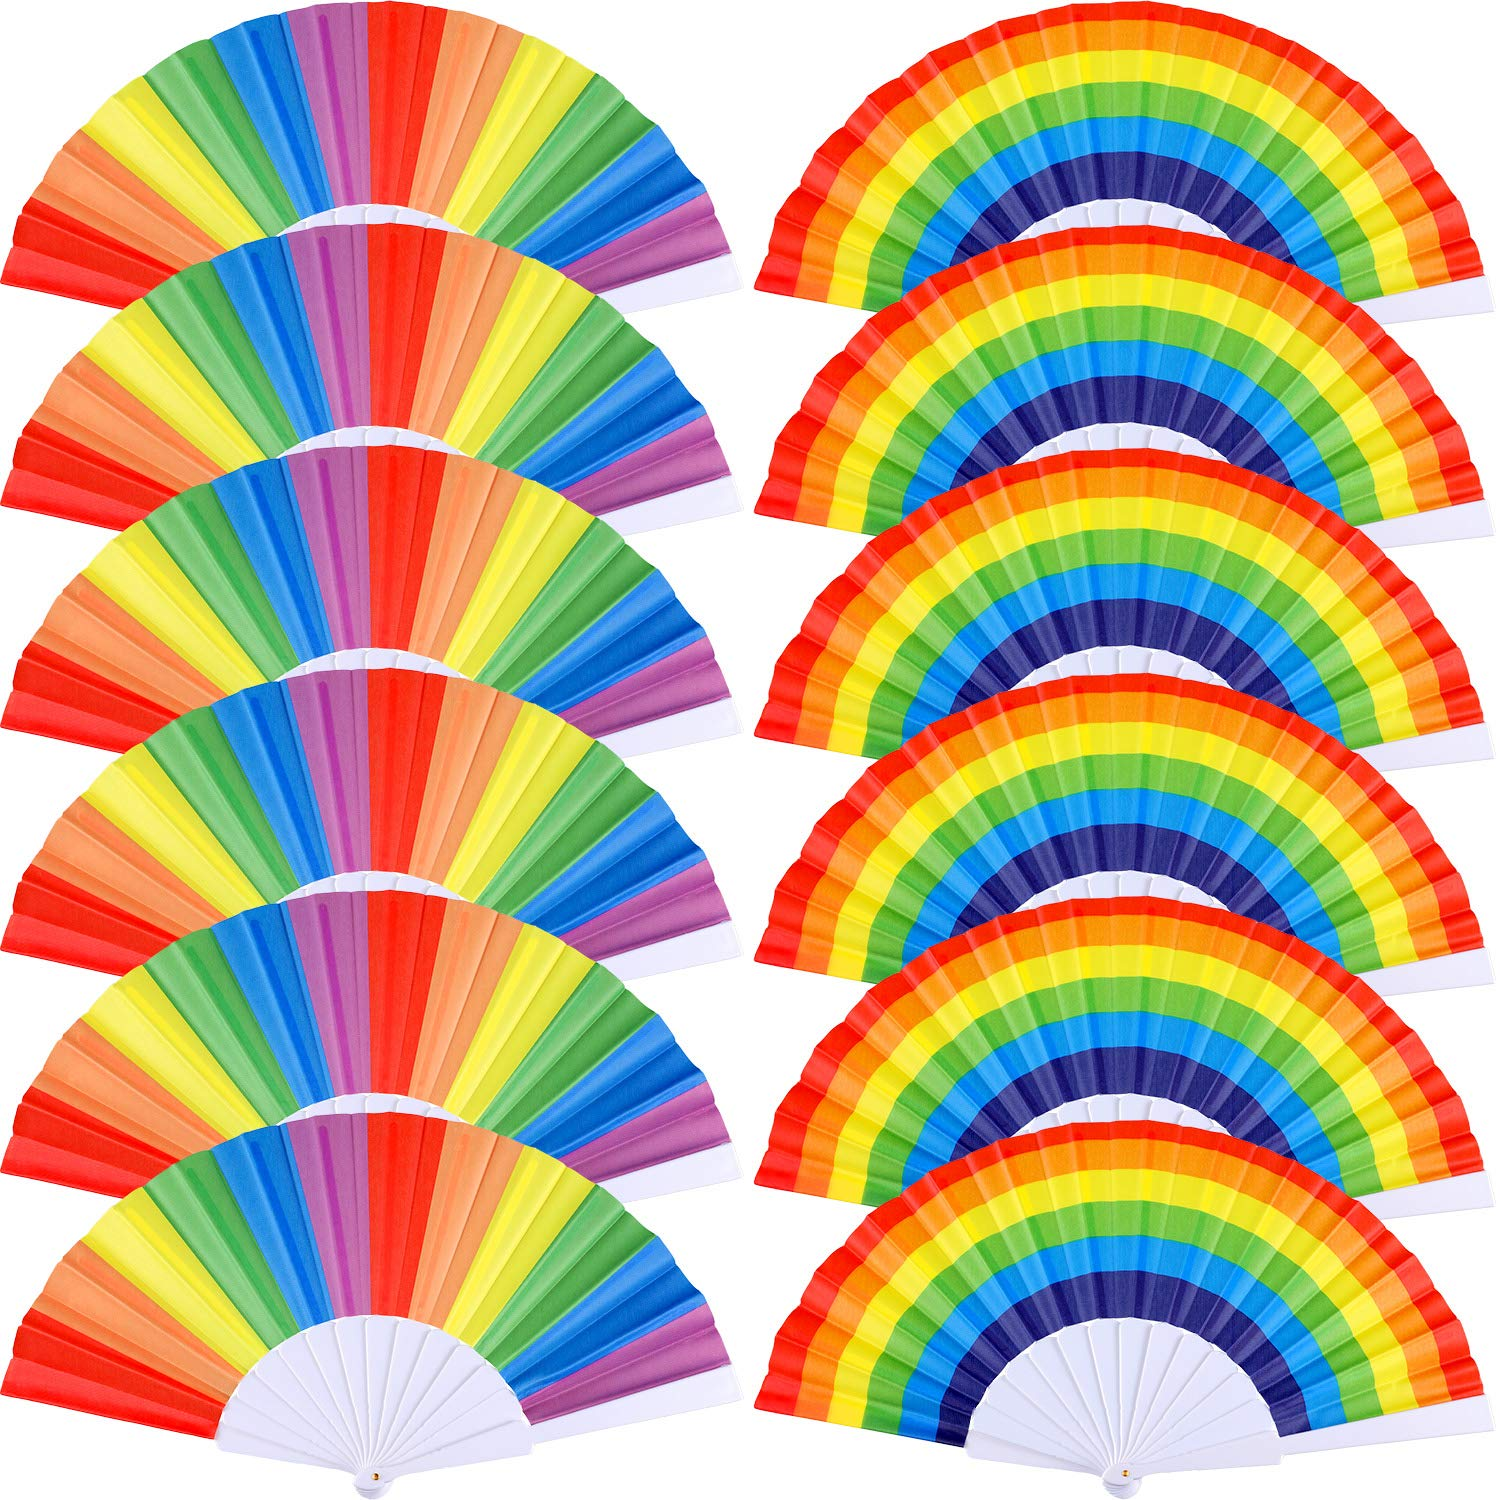 Yaomiao 12 Pieces Rainbow Fans Rainbow Folding Fans Colorful Hand Held Fan Summer Accessory for Rainbow Party Decoration (Horizontal and Vertical Stripes)